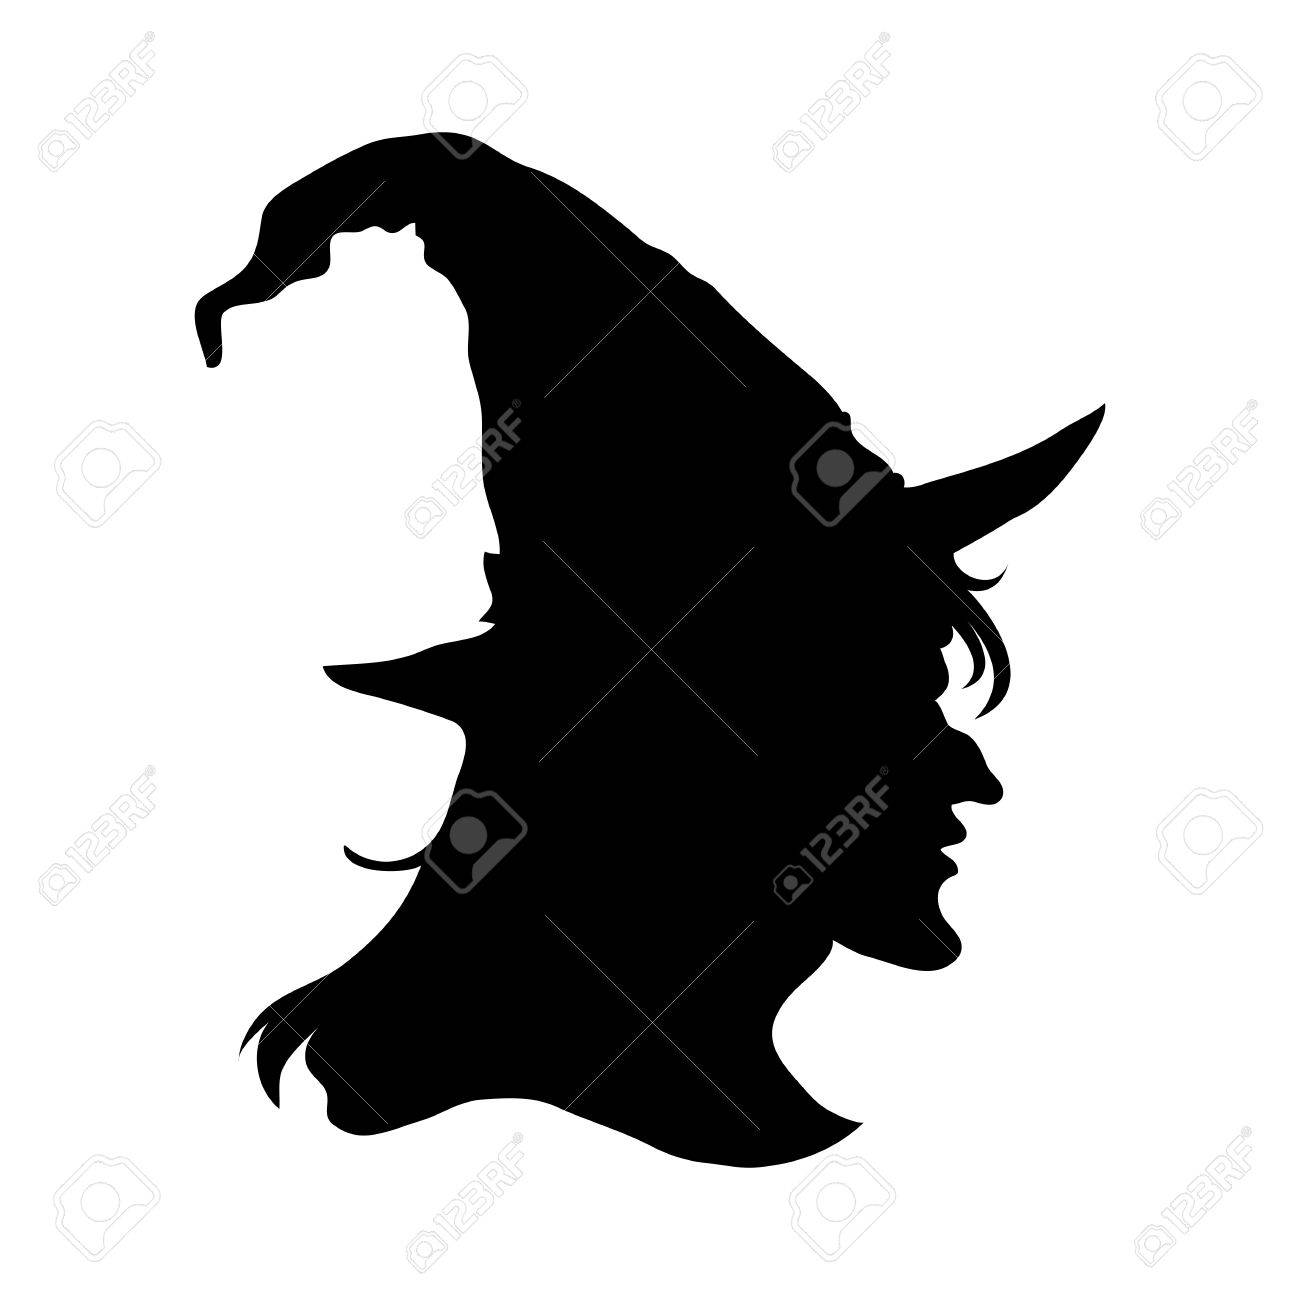 halloween witch head silhouette royalty free cliparts vectors - Chrispy Halloween